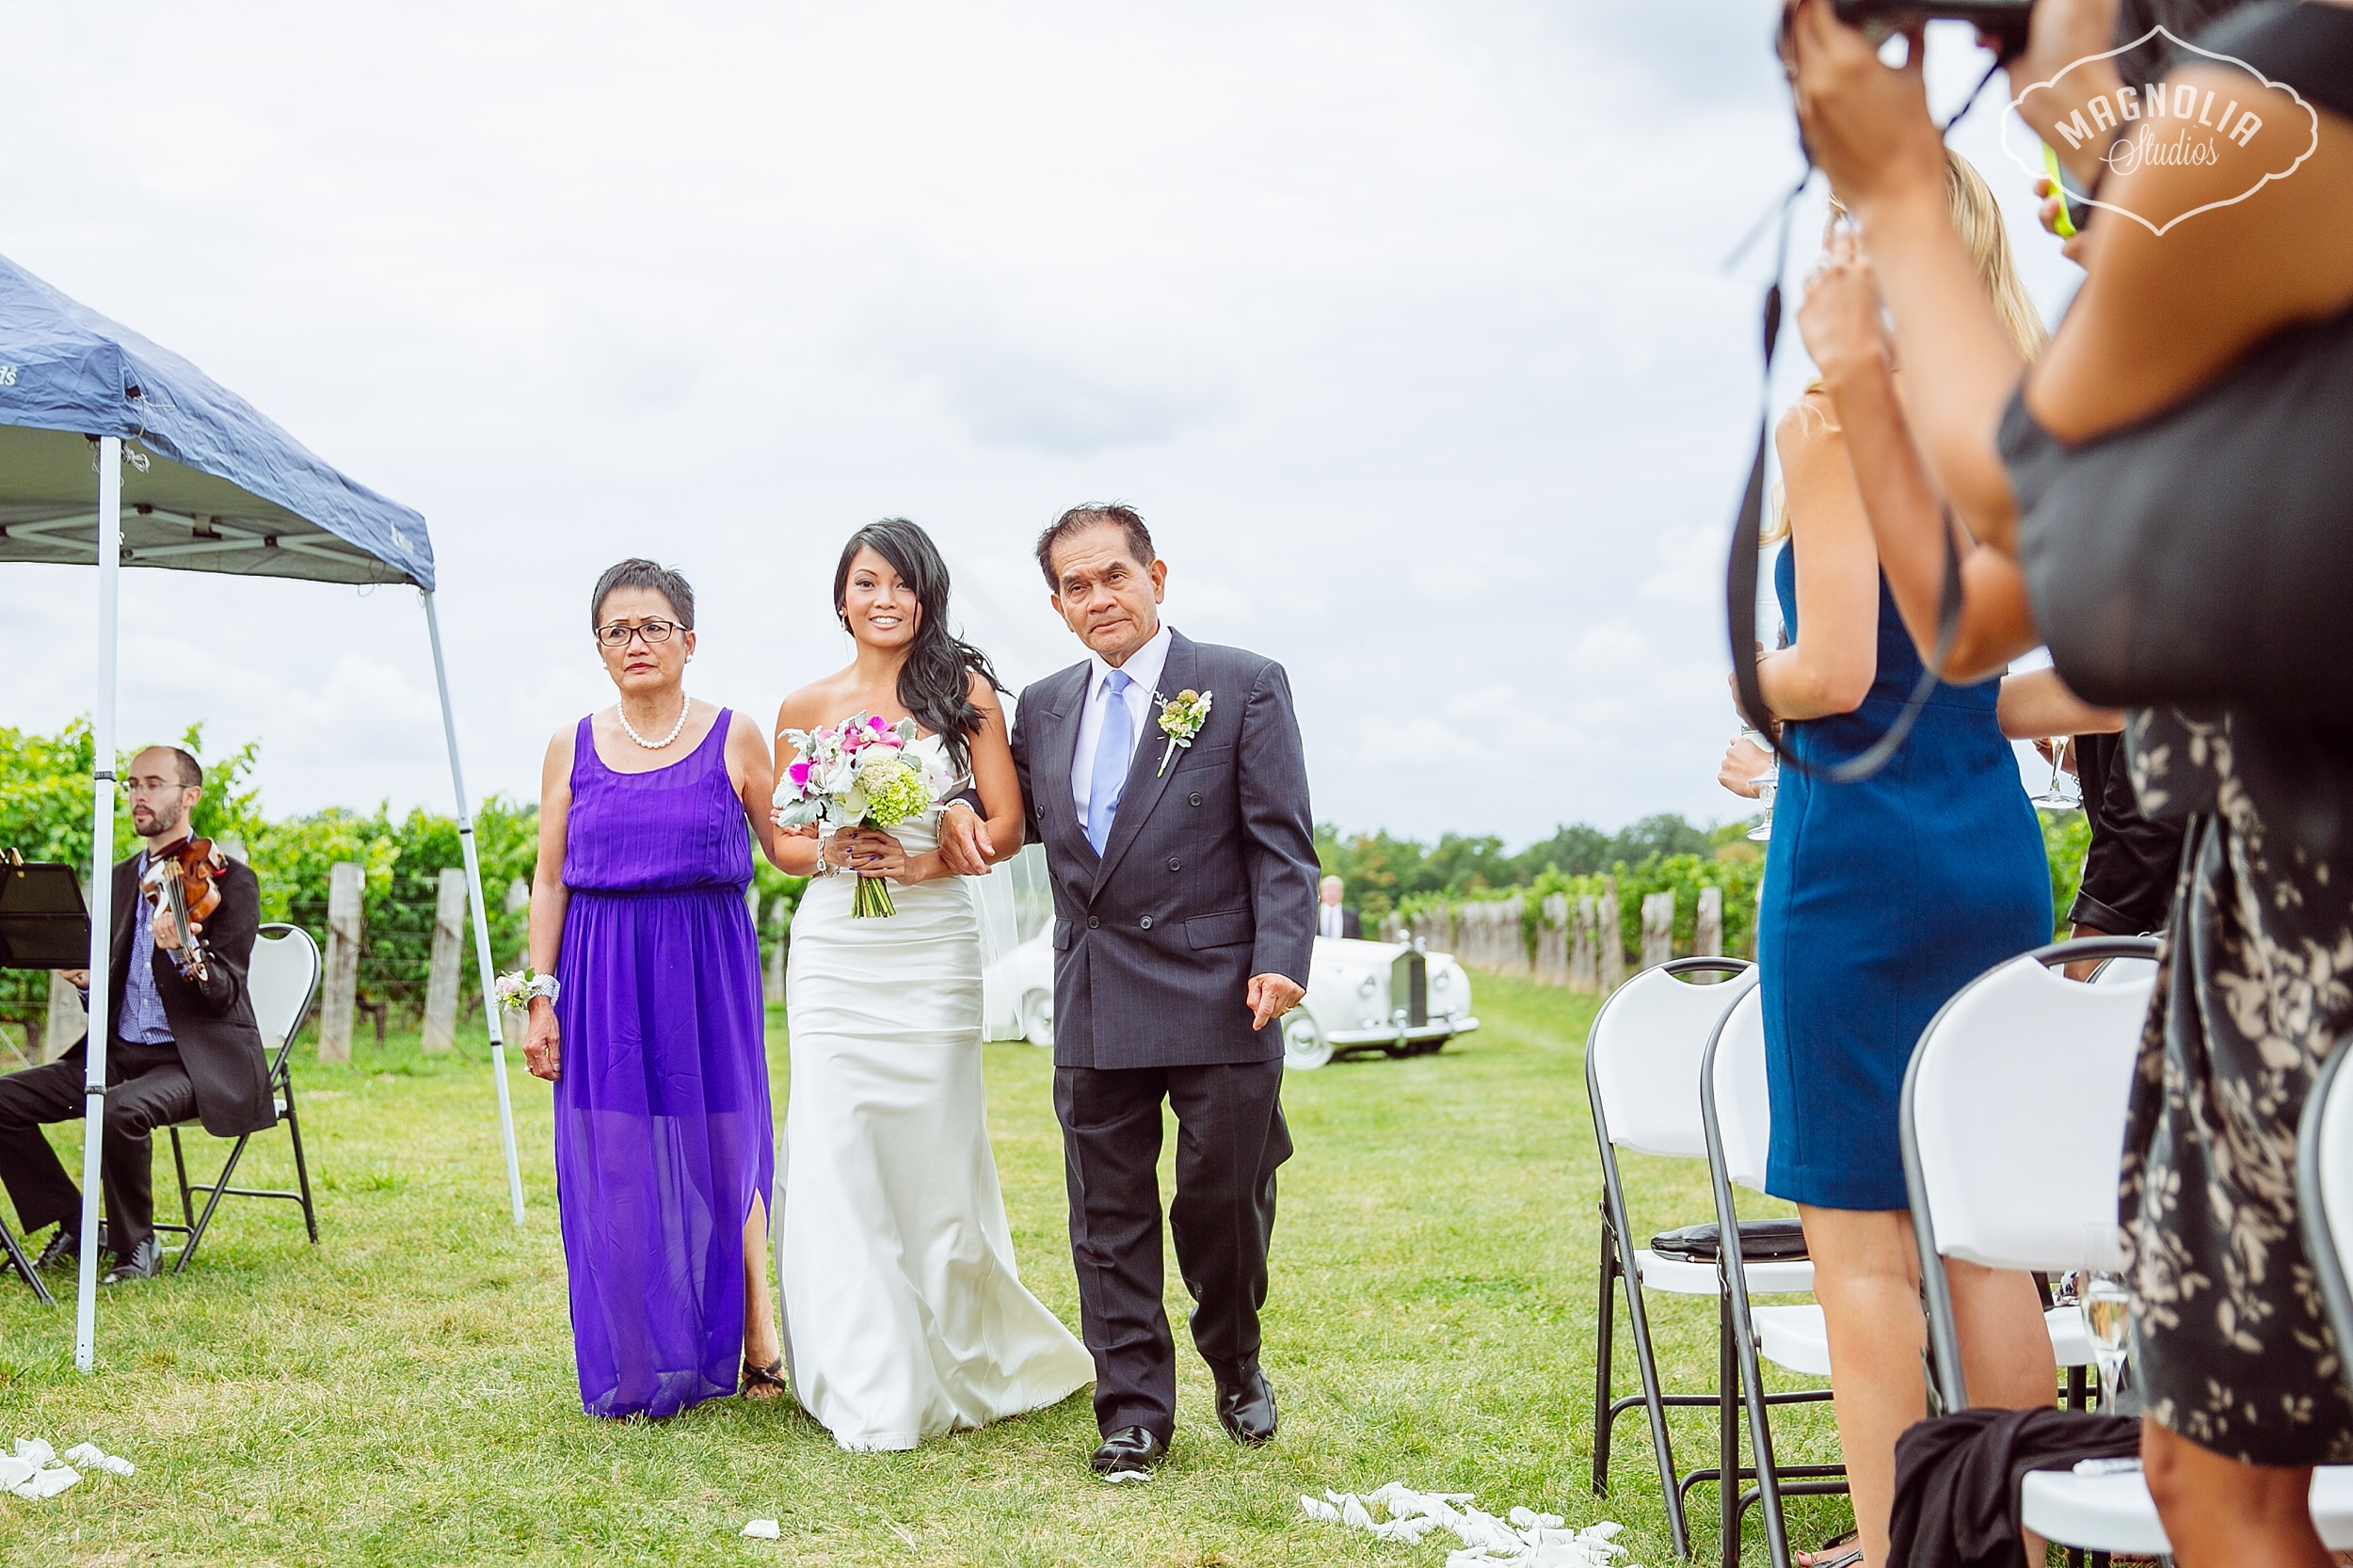 Cavesprings_Winery_Wedding_NOTL-0029